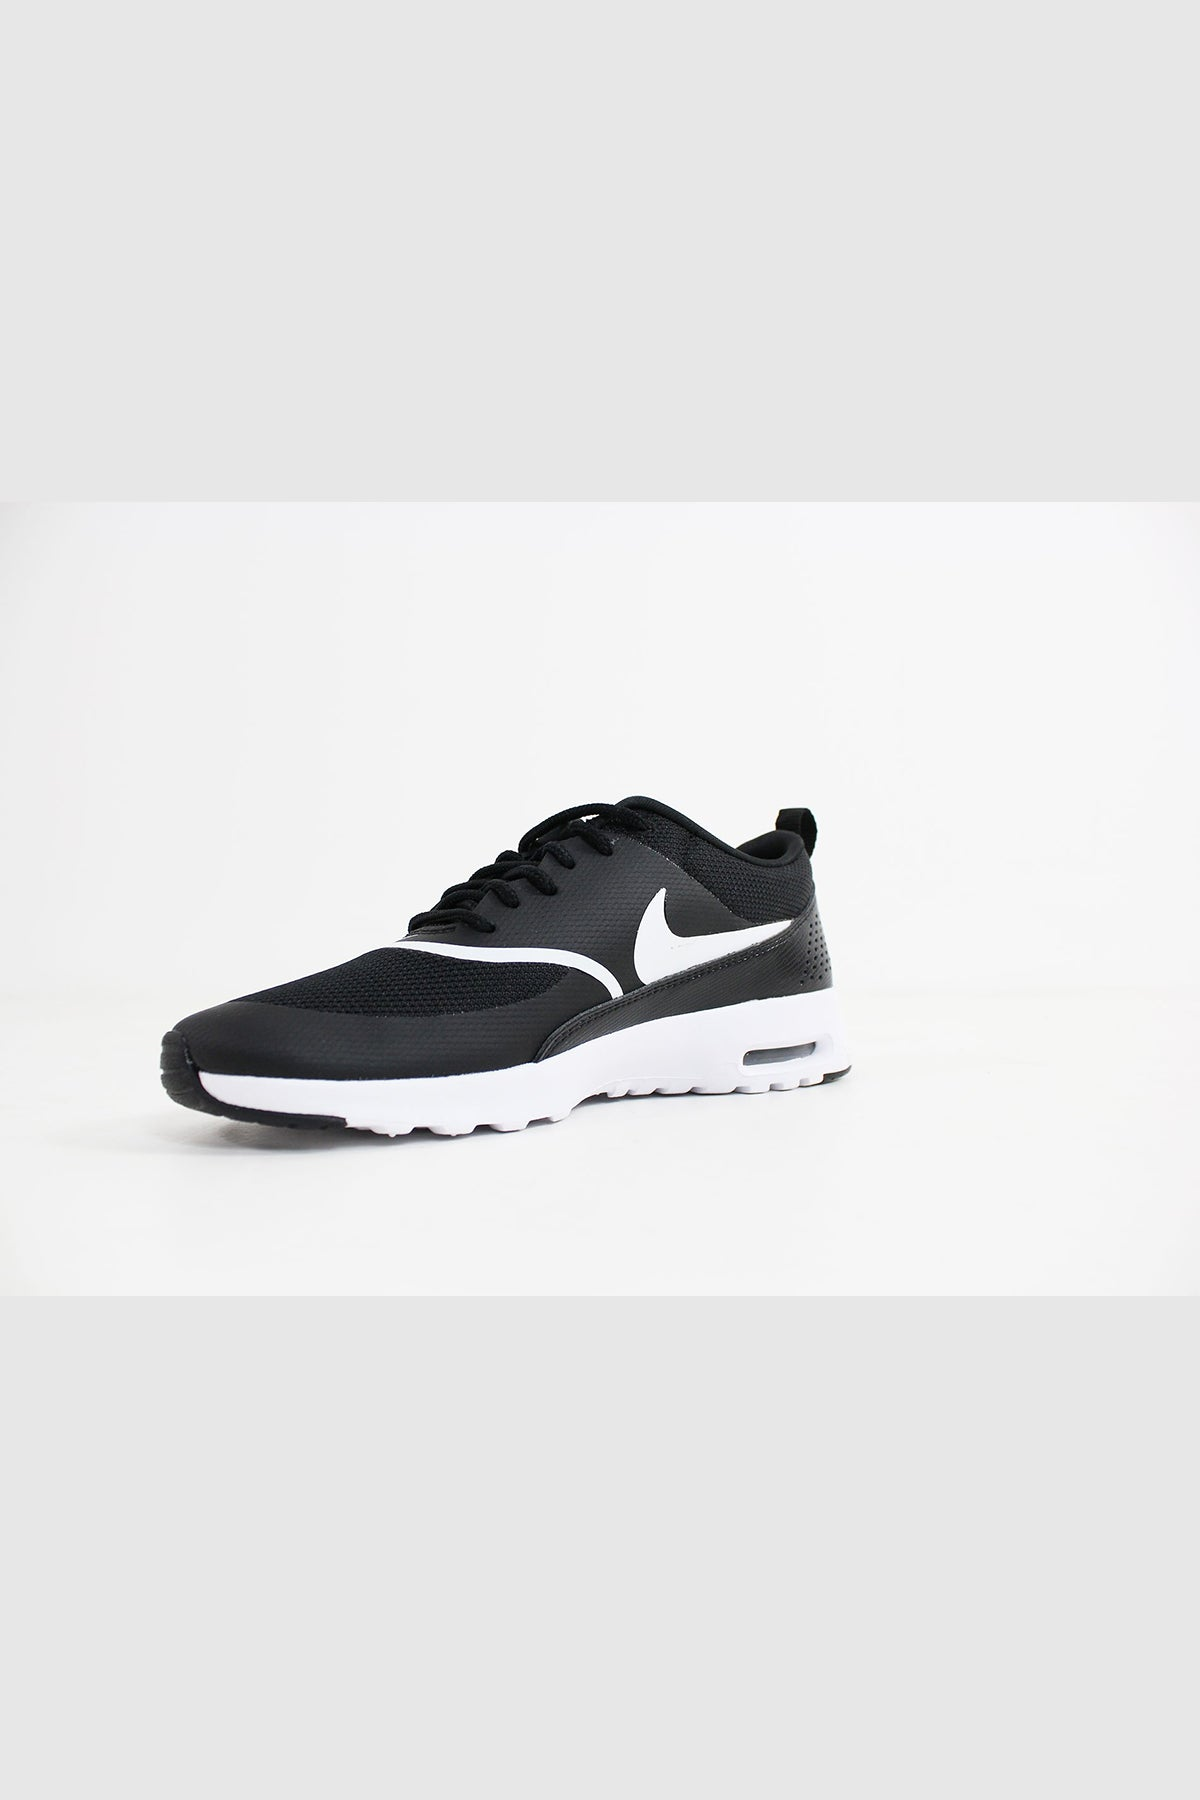 quality design d7a1c 7c8e6 Nike - Air Max Thea Women (Black White) 599409-028